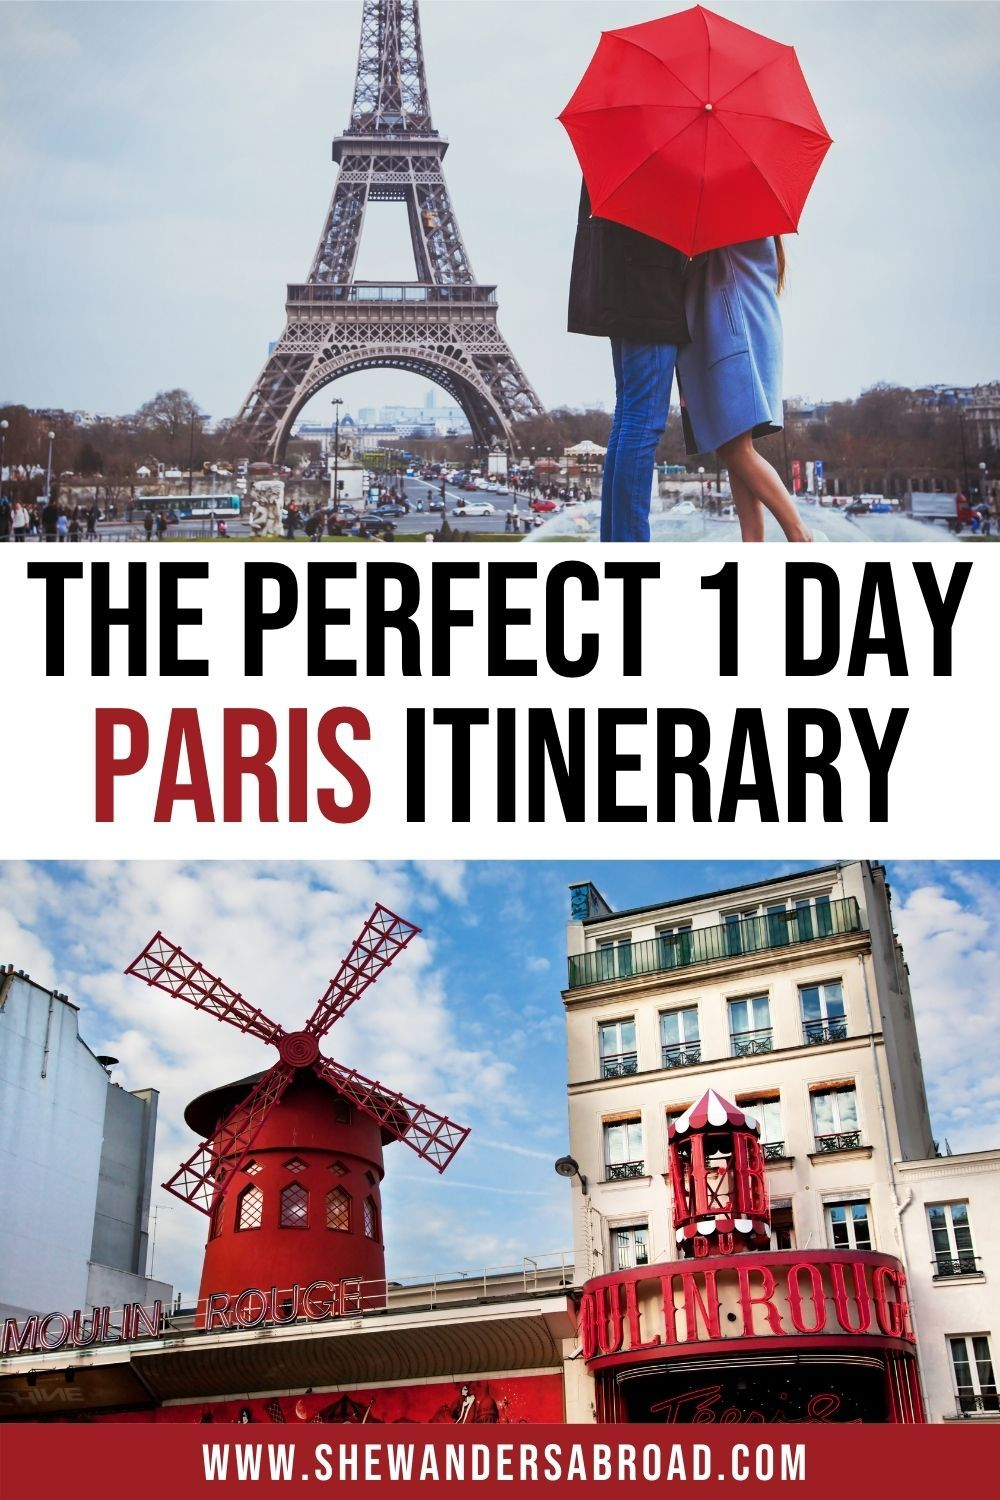 One Day in Paris Itinerary: How to See the Best of